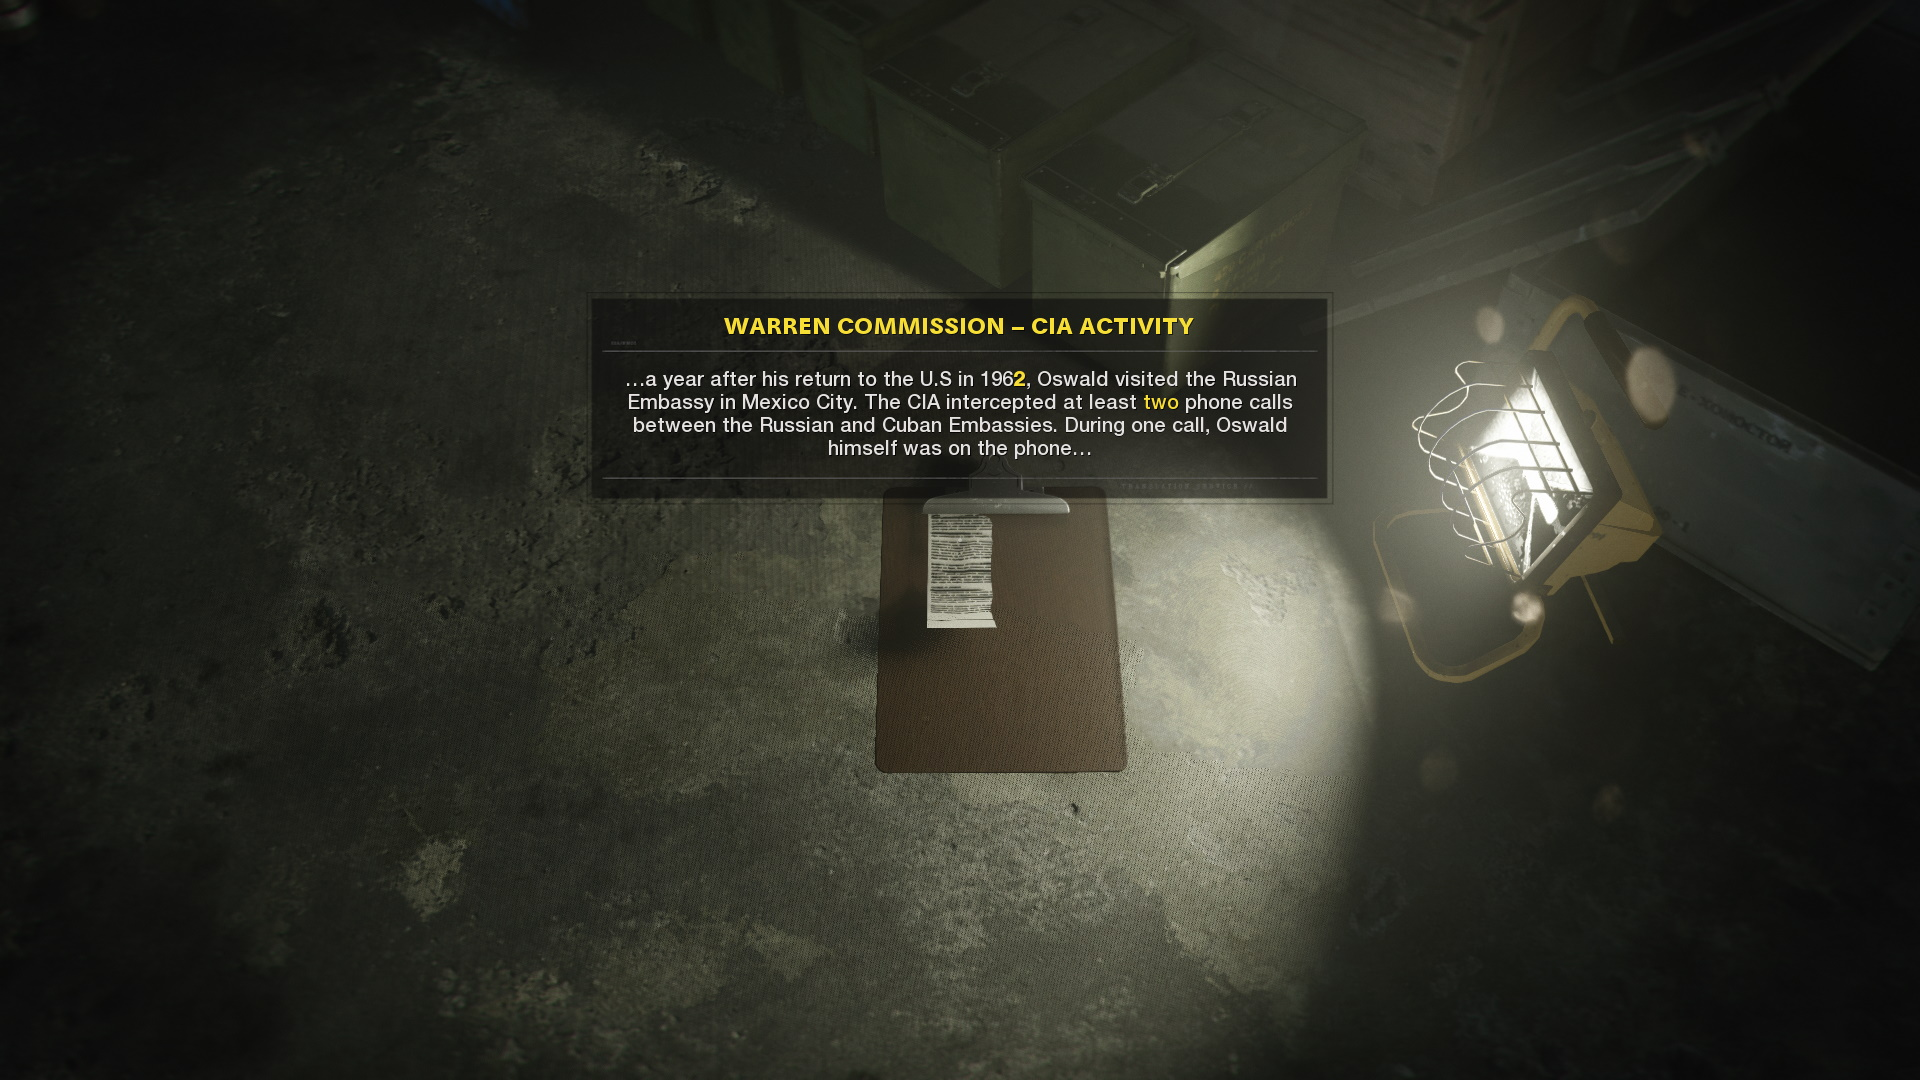 The warren commission note in Call of Duty Cold War's campaign safehouse. It reads: '...a year after his rerturn to the U.S in 1962, Oswald visited the Russian Embassy in Mexico City. The CIA intercepted at least two phone calls between the Russian and Cuban Embassies. During one call, Oswald himself was on the phone...'